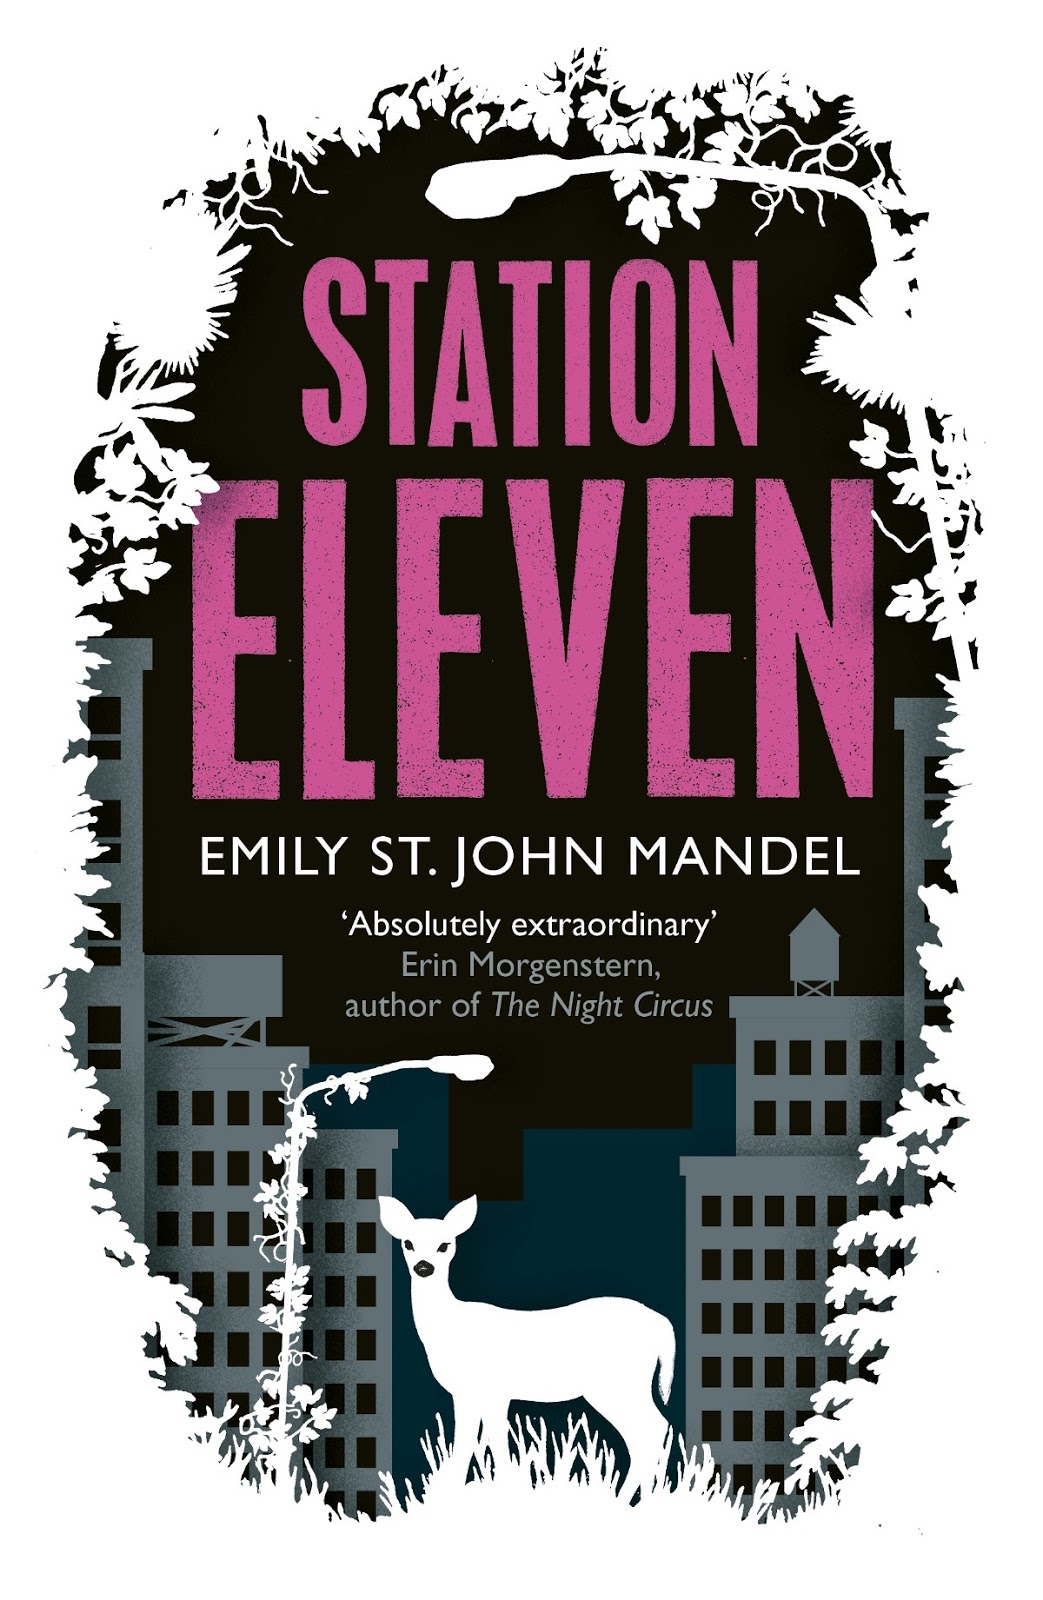 Book cover for Emily St. John Mandel's Station Eleven in the South Manchester, Chorlton, and Didsbury book group